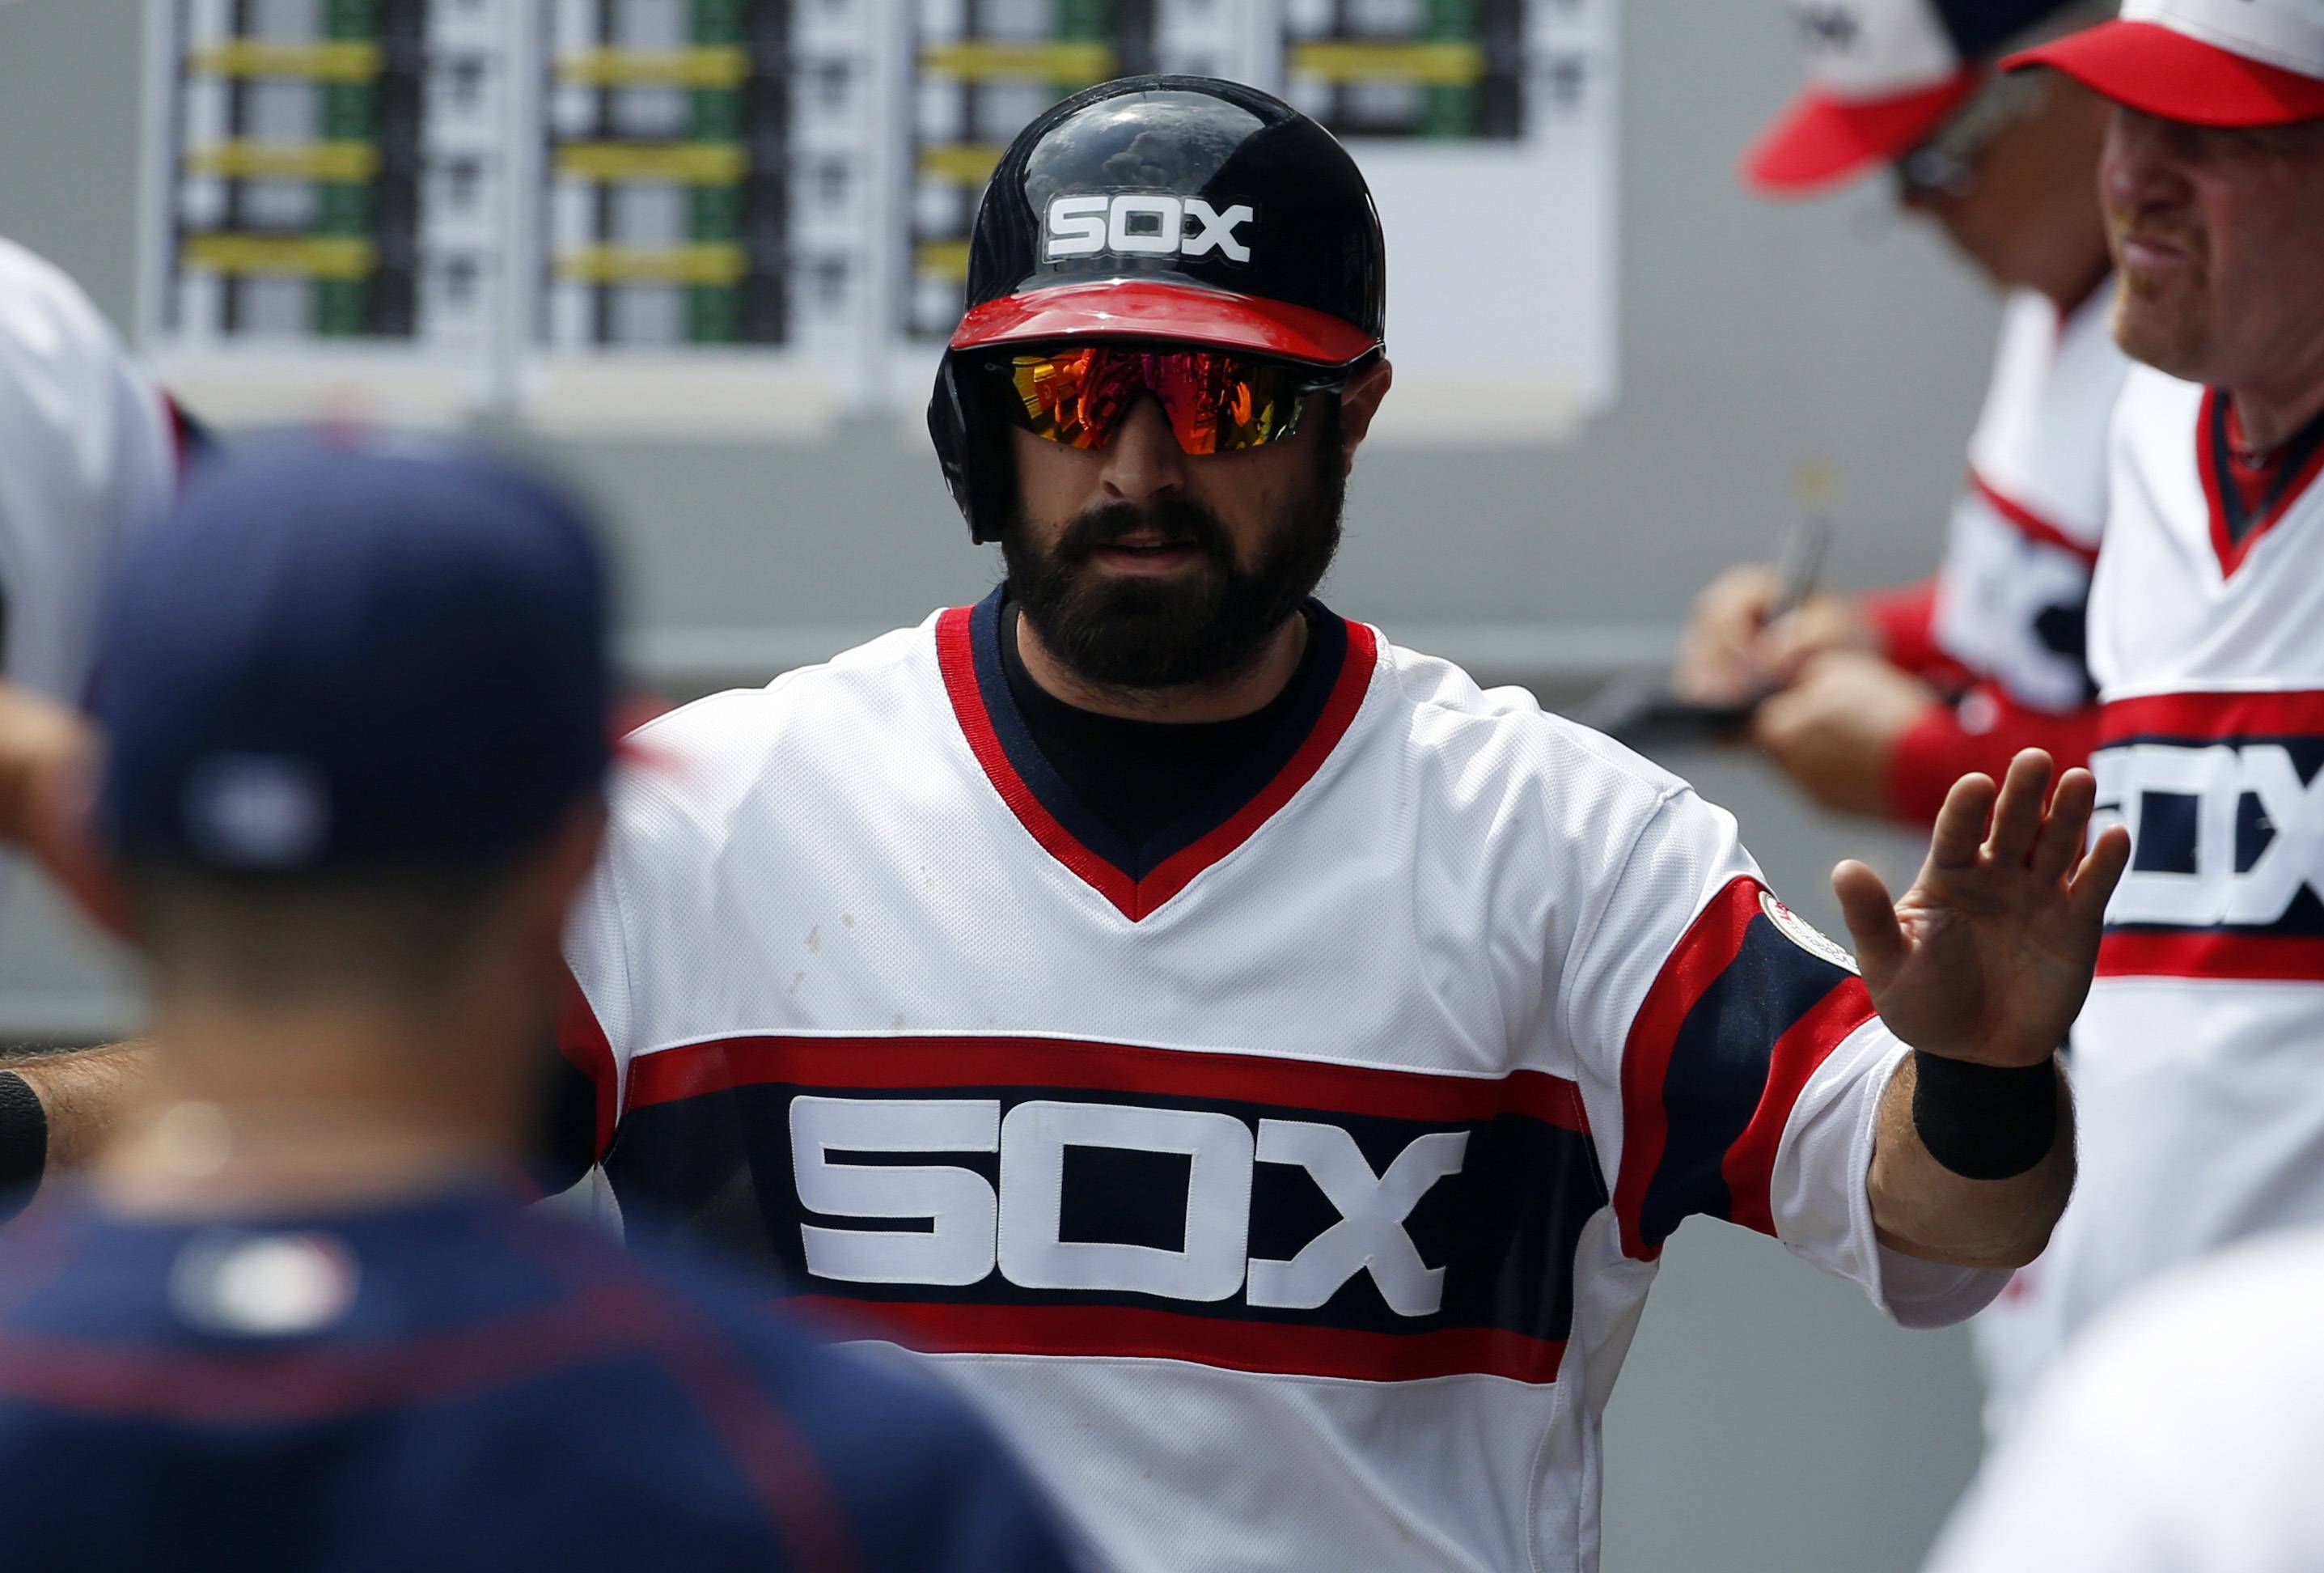 Chicago White Sox's Adam Eaton celebrates with teammates in the dugout after scoring on a single hit by Jose Abreu during the first inning of a baseball game against the Detroit Tigers, Sunday, July 24, 2016, in Chicago. (AP Photo/Nam Y. Huh)